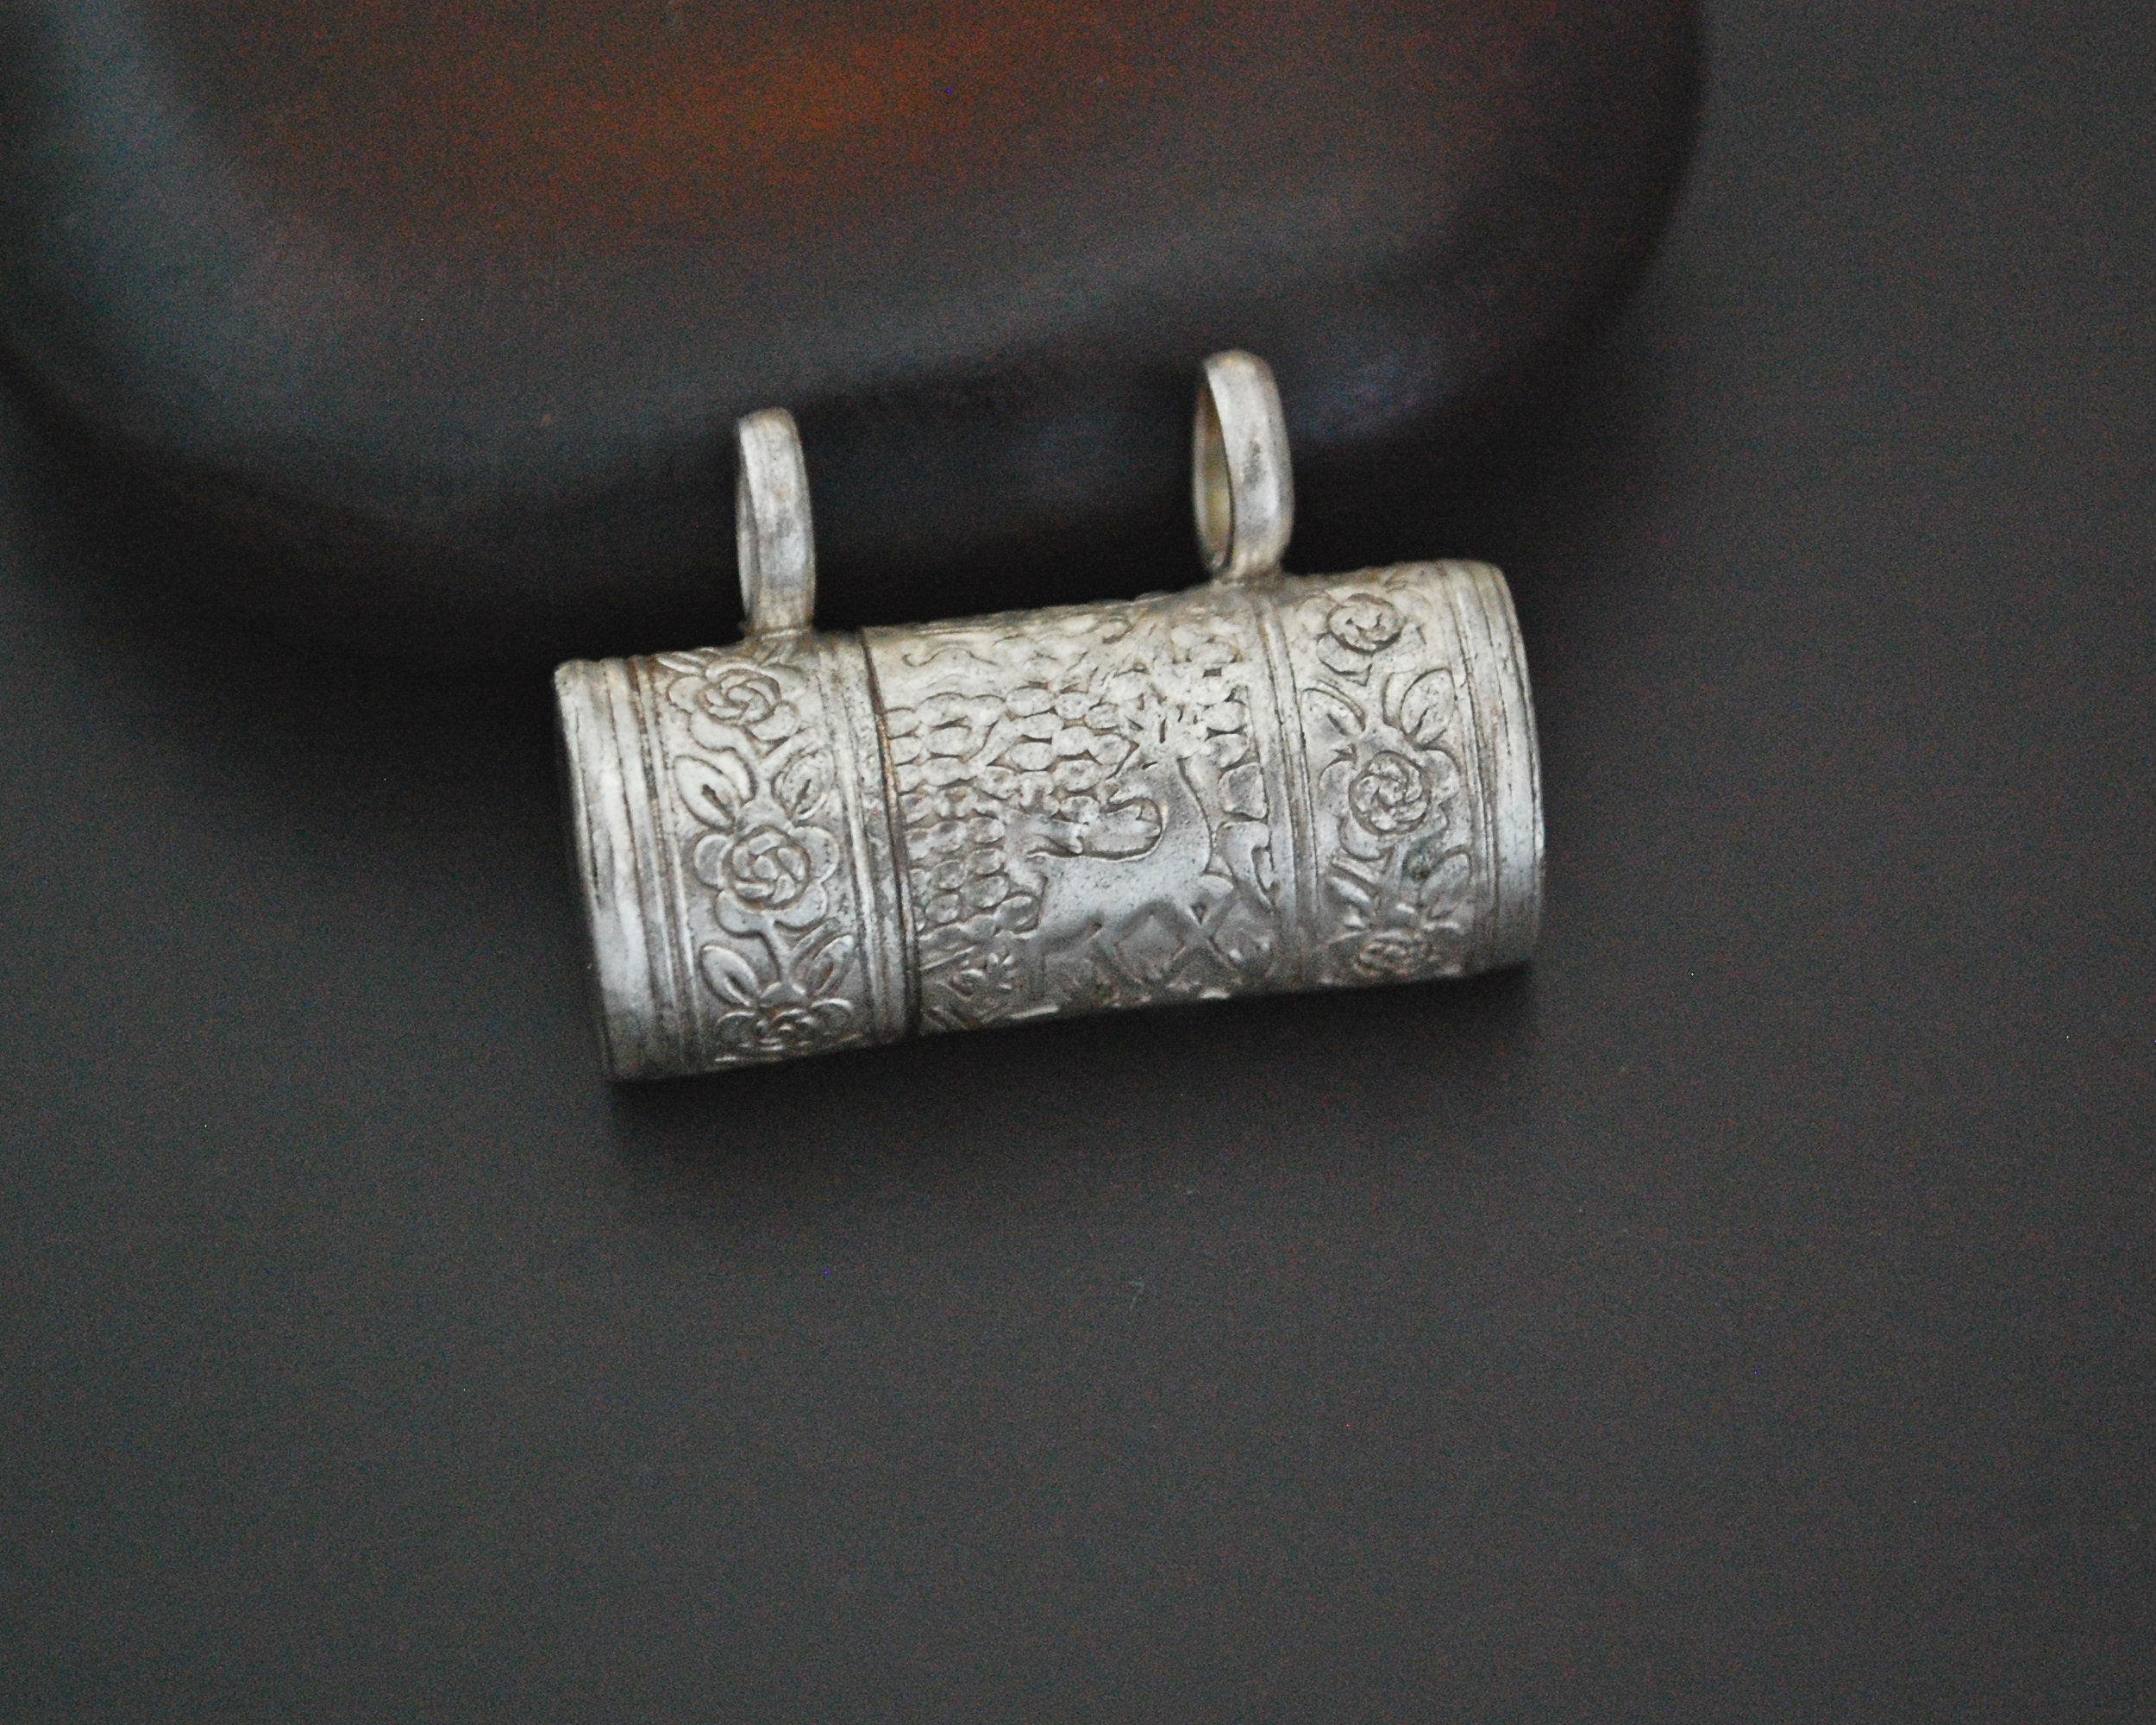 Openable Silver Box Amulet Pendant with Deer and Flowers